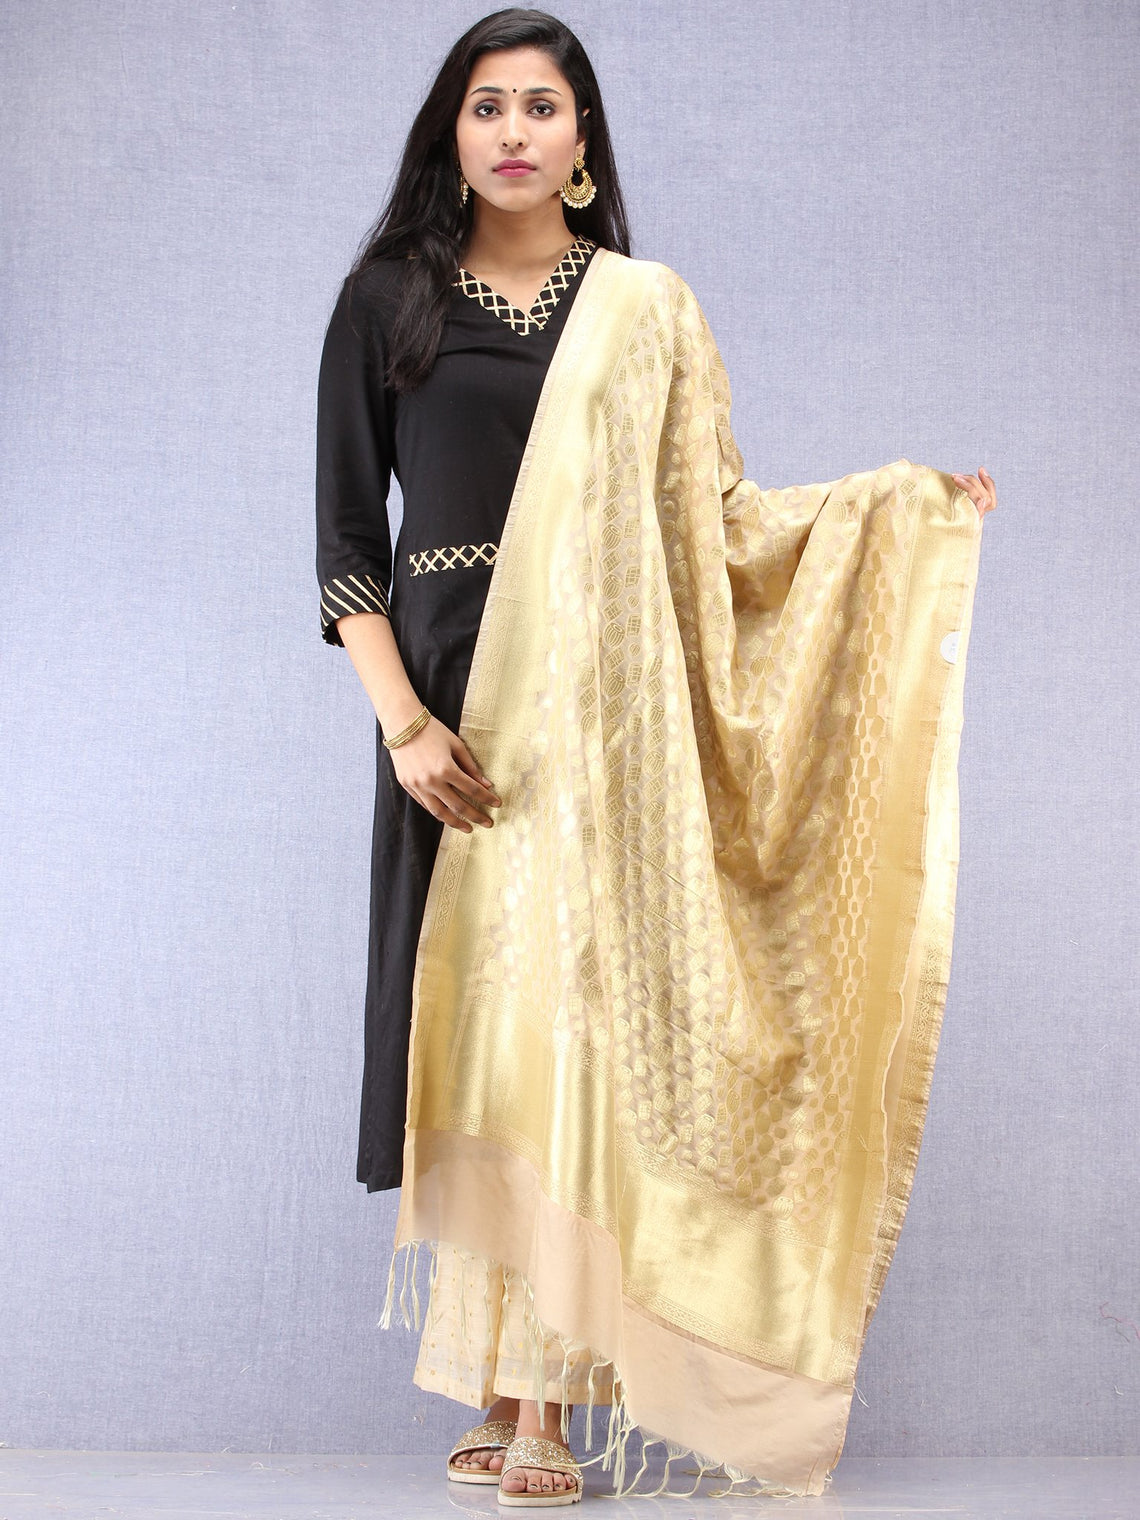 Banarasi Kanni Silk Dupatta With Zari Work - Ivory & Gold - D04170869